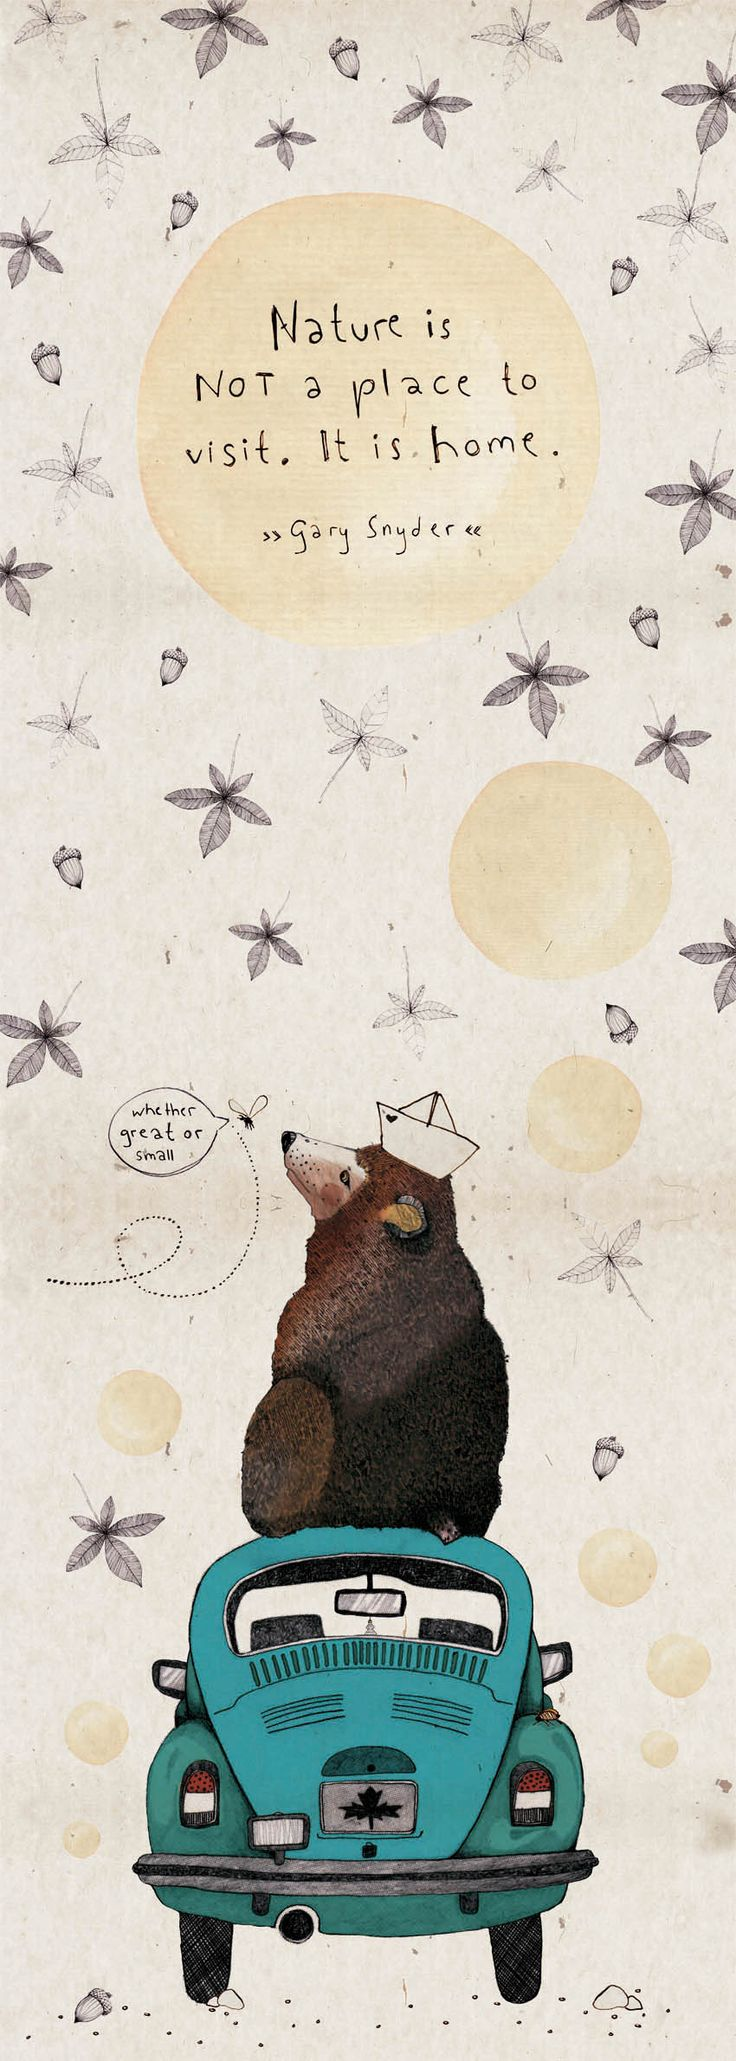 """""""It is Home"""" Illustration by Susanne Hiepler. It's about sharing and consideration of space and a quote by Gary Snyder. A Grizzly Bear sitting on a Car."""